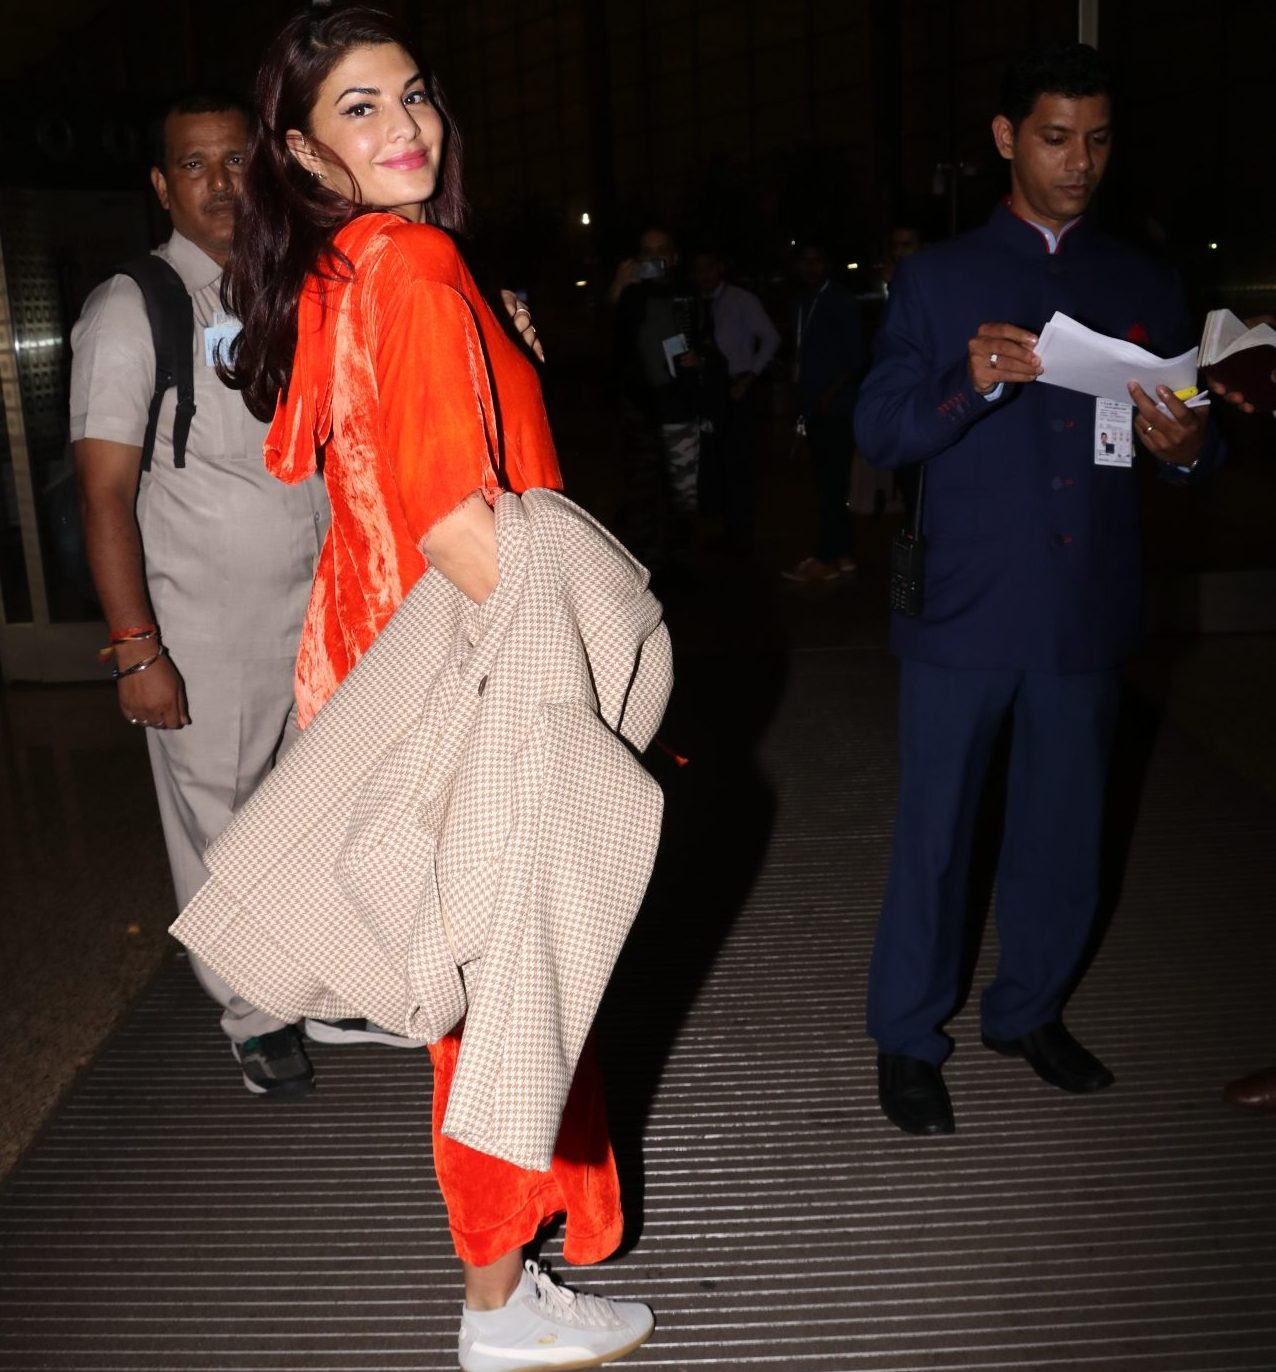 Jacqueline Fernandez who is a model turned actress has been captured at an Airport where she looks charming in this fluorescent orange hoodie. The actress was last seen in the movie A Gentleman along with Sidharth Malhotra where they both shared a sizzling chemistry with each other